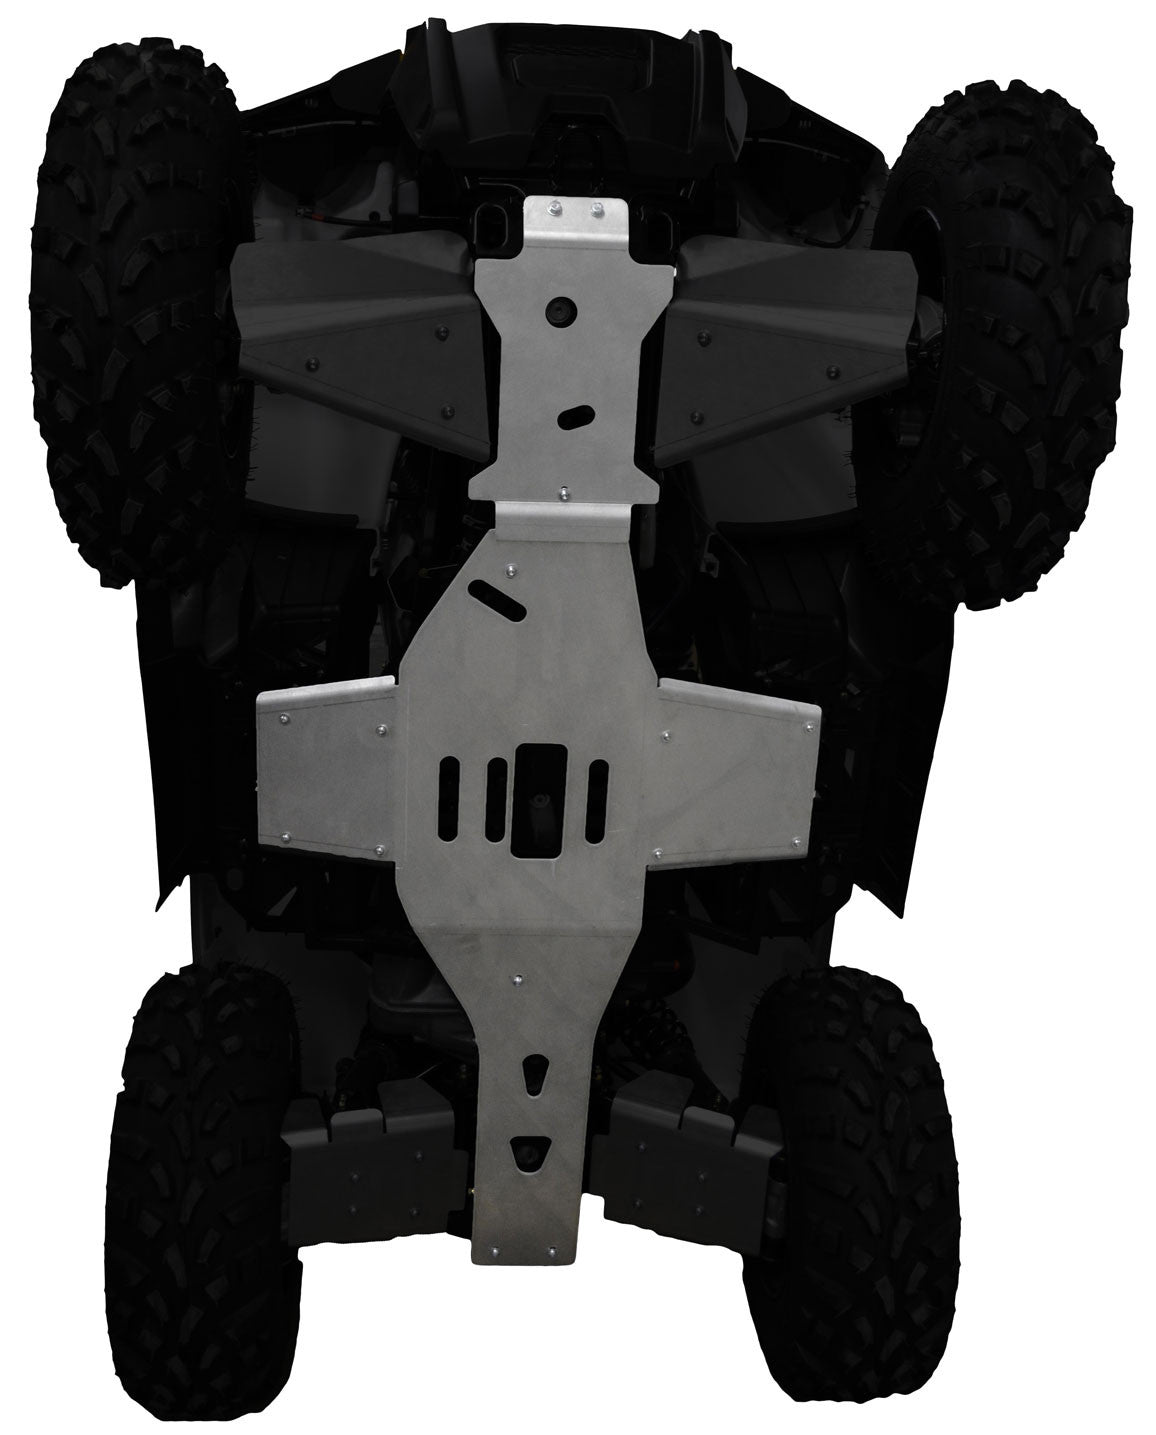 3-Piece Full Frame Skid Plate Set, Polaris Sportsman 570 Touring